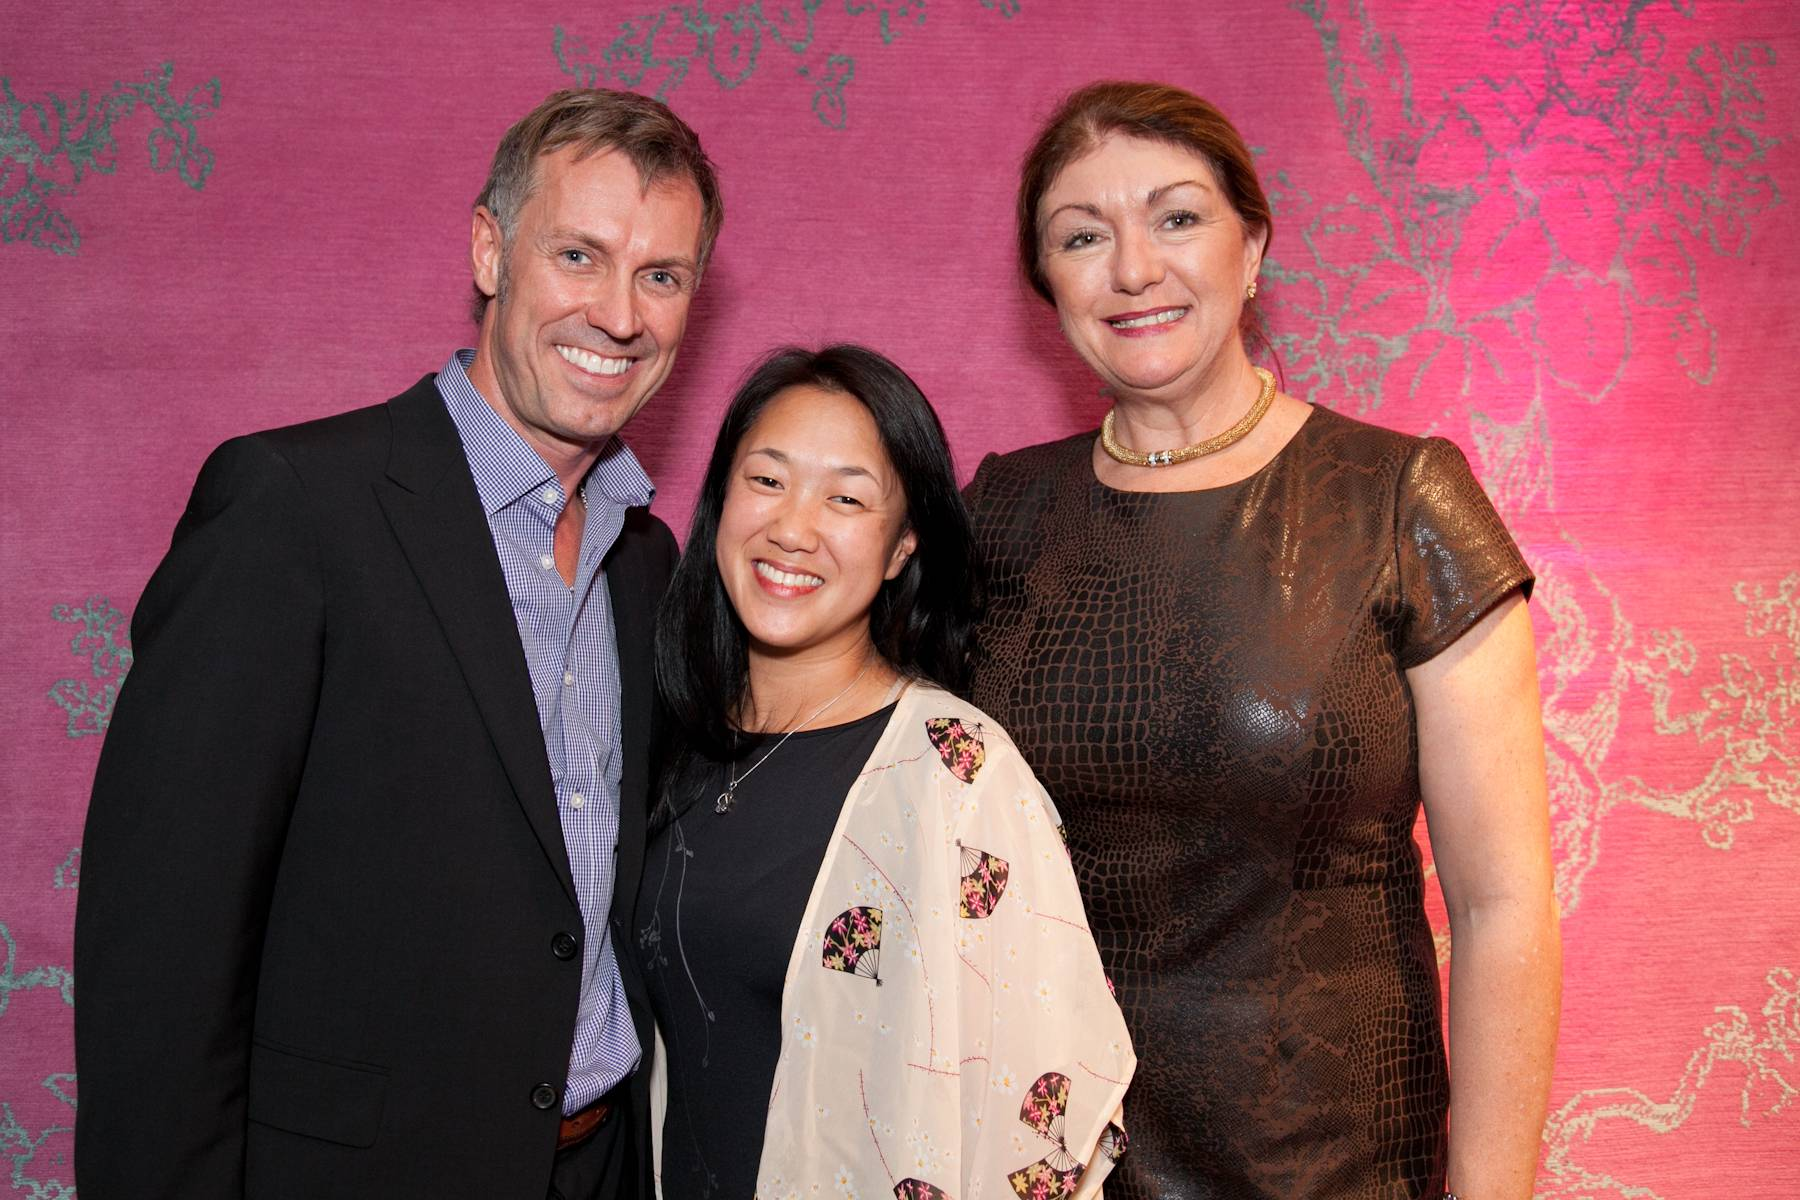 Designer David Mast,  Kimi Nishikawa and Dwell President Michela O'Connor Abrams